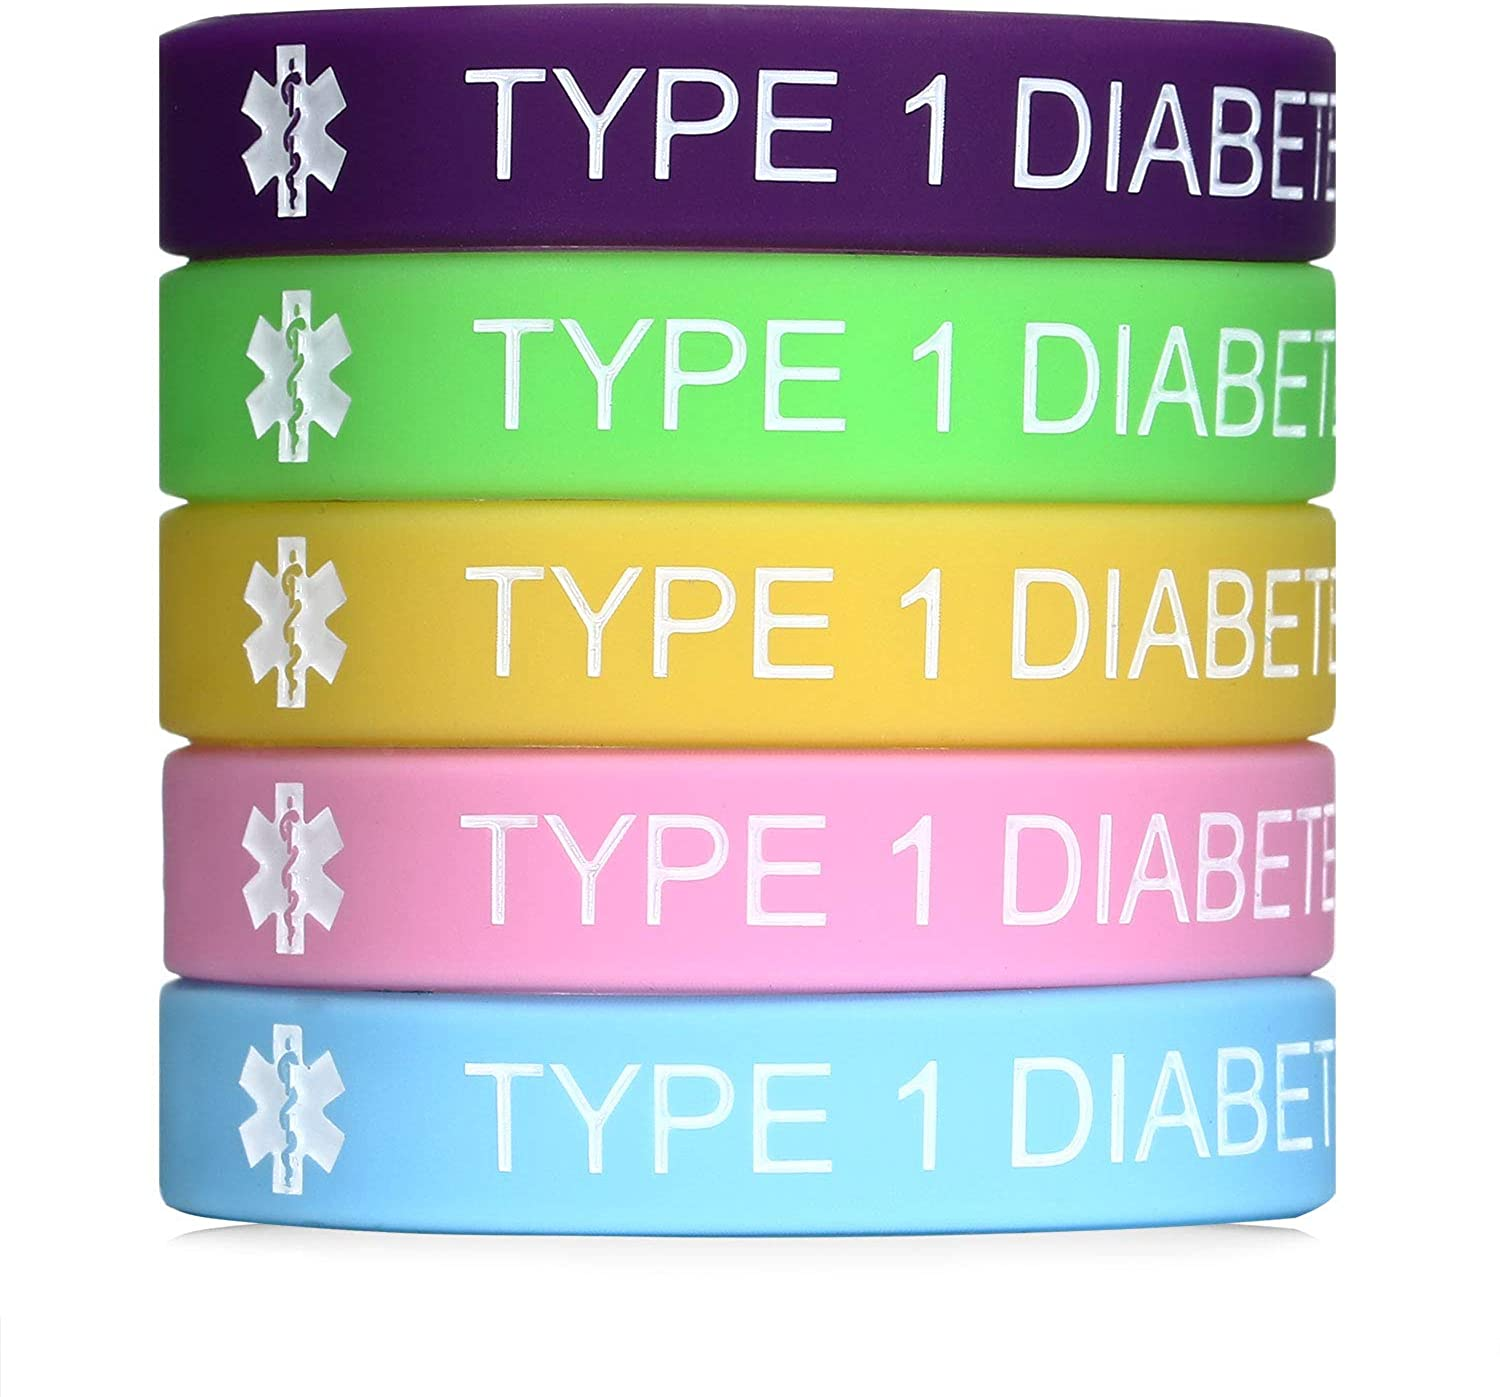 Type 1 Diabetes Medical Alert Silicone Bracelet for Women & Kids 7.5 inches,Pack of 5